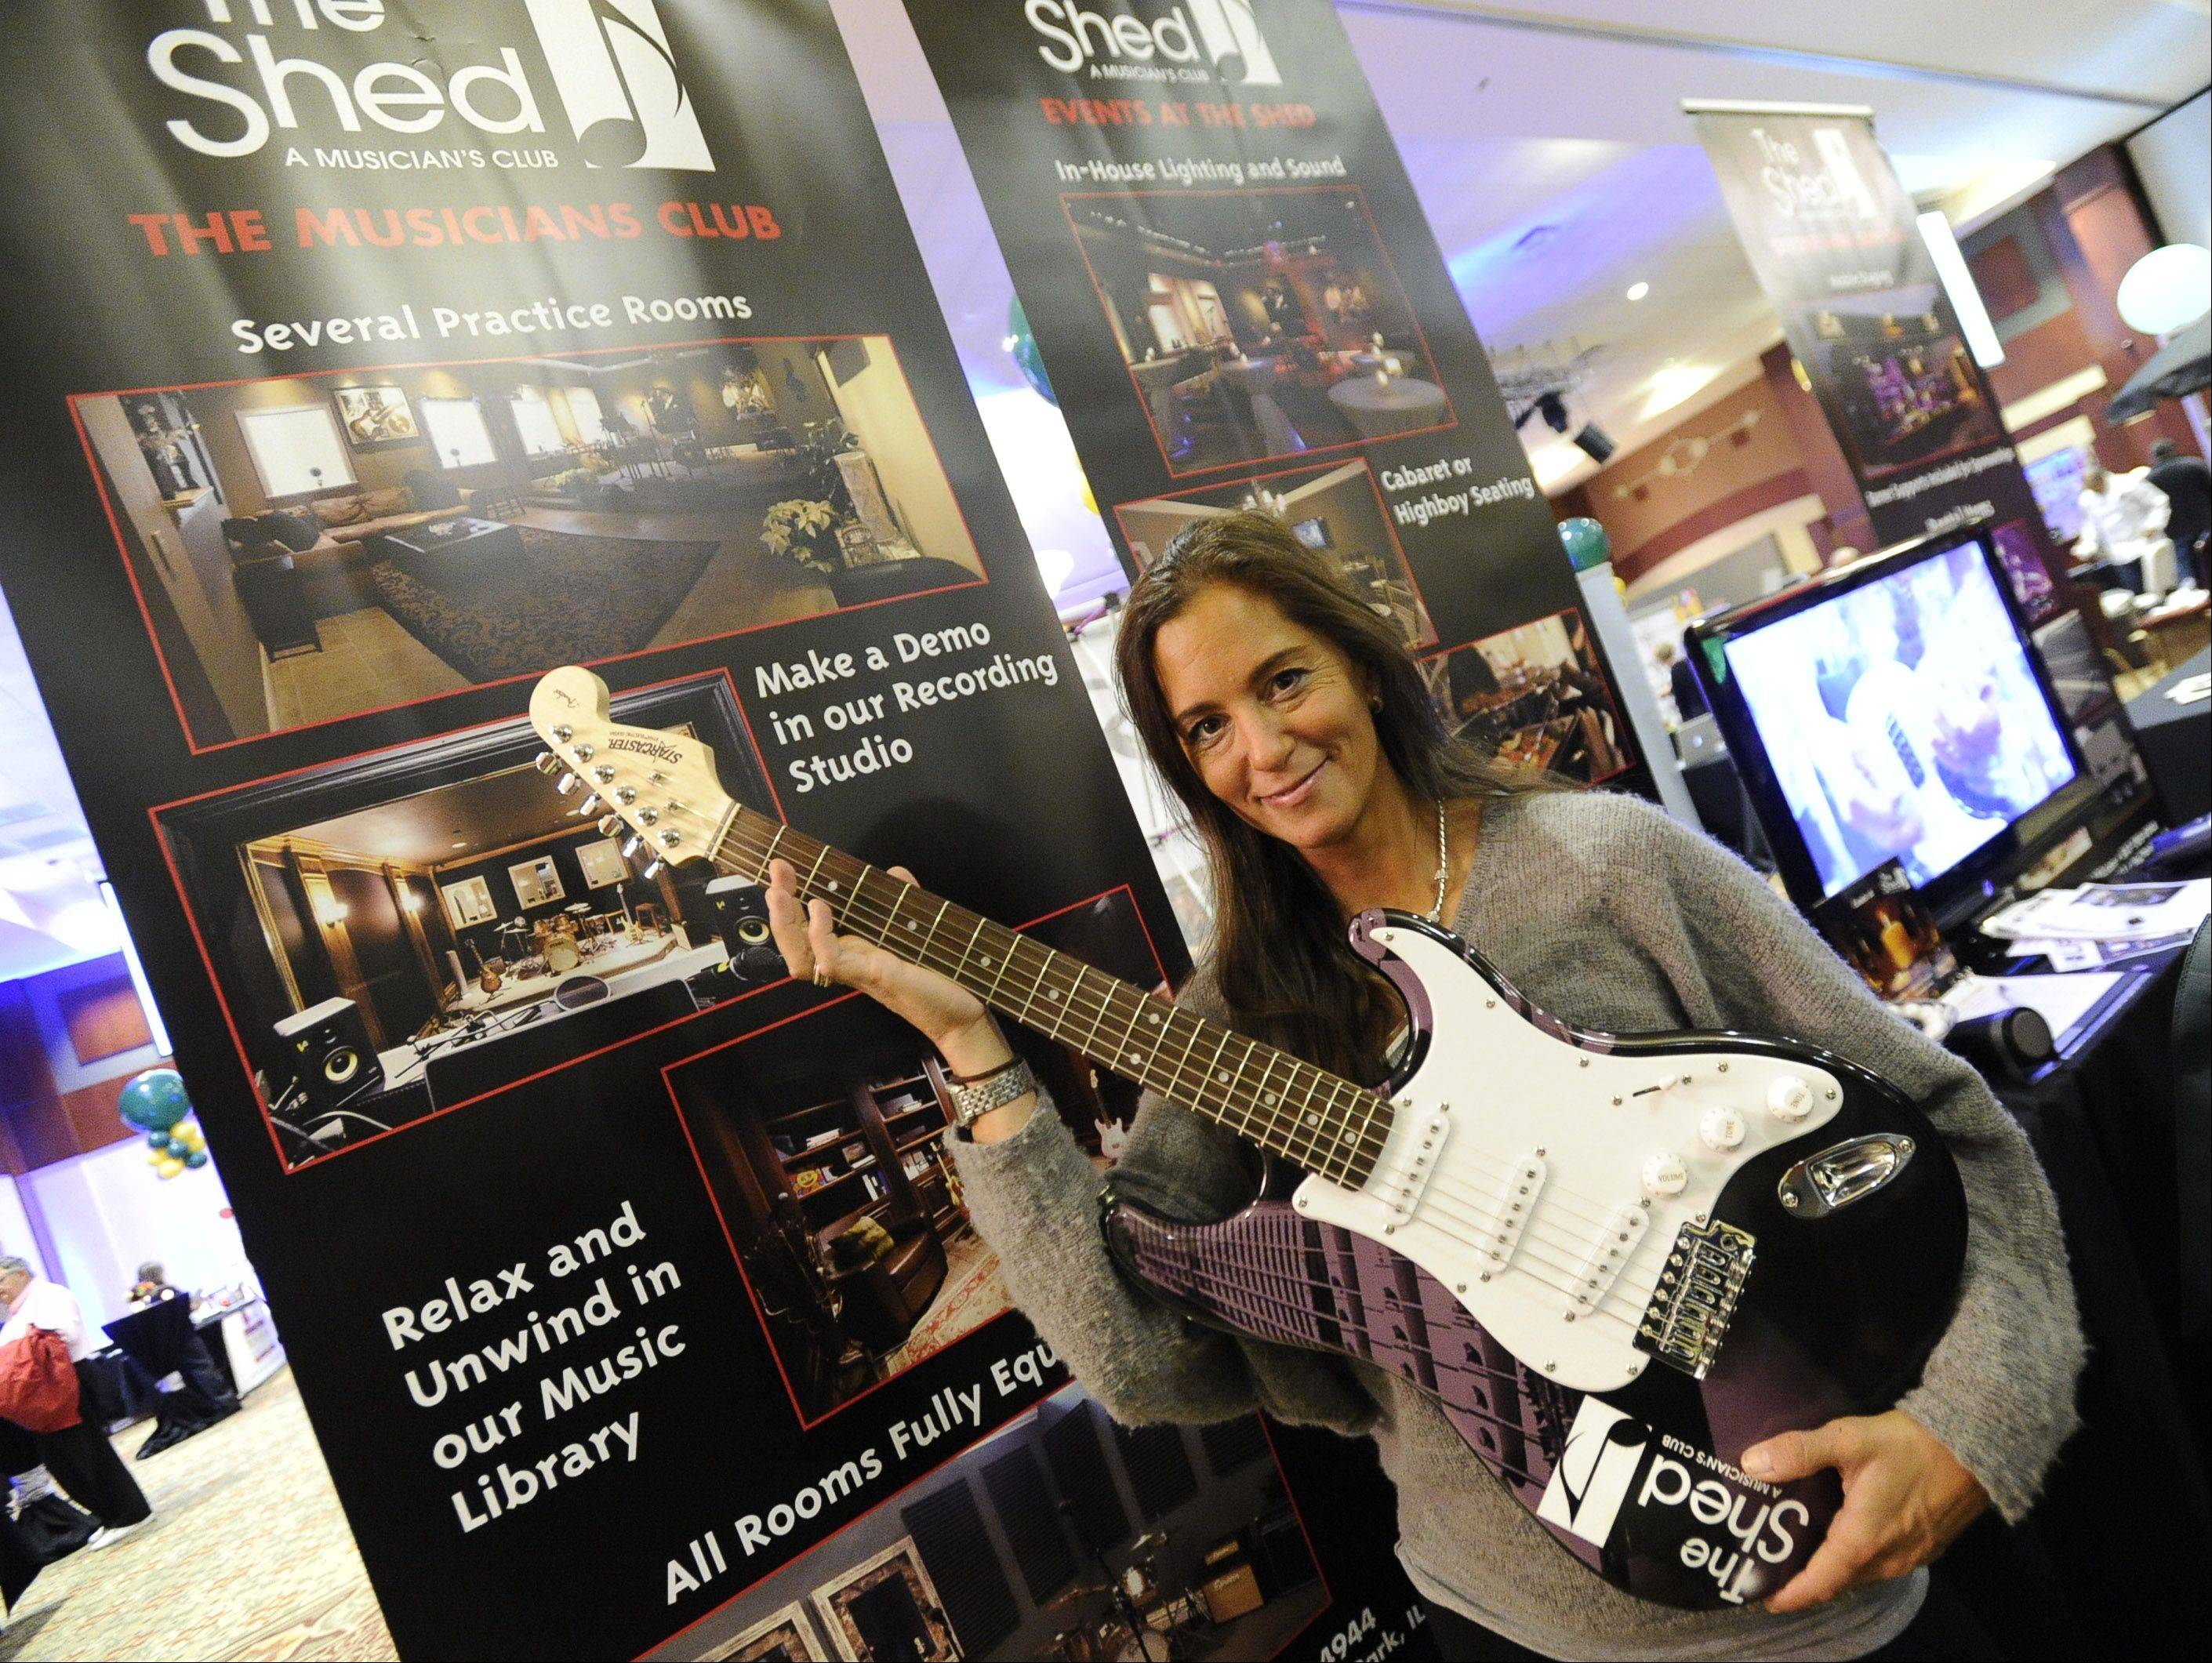 Kimberly Schiffman, vice-president of sales and events at The Shed, A Musicians's Club in Highland Park, gets rocking Thursday at Northwest Hospitality Expo 2013 at the Meadows Club in Rolling Meadows.